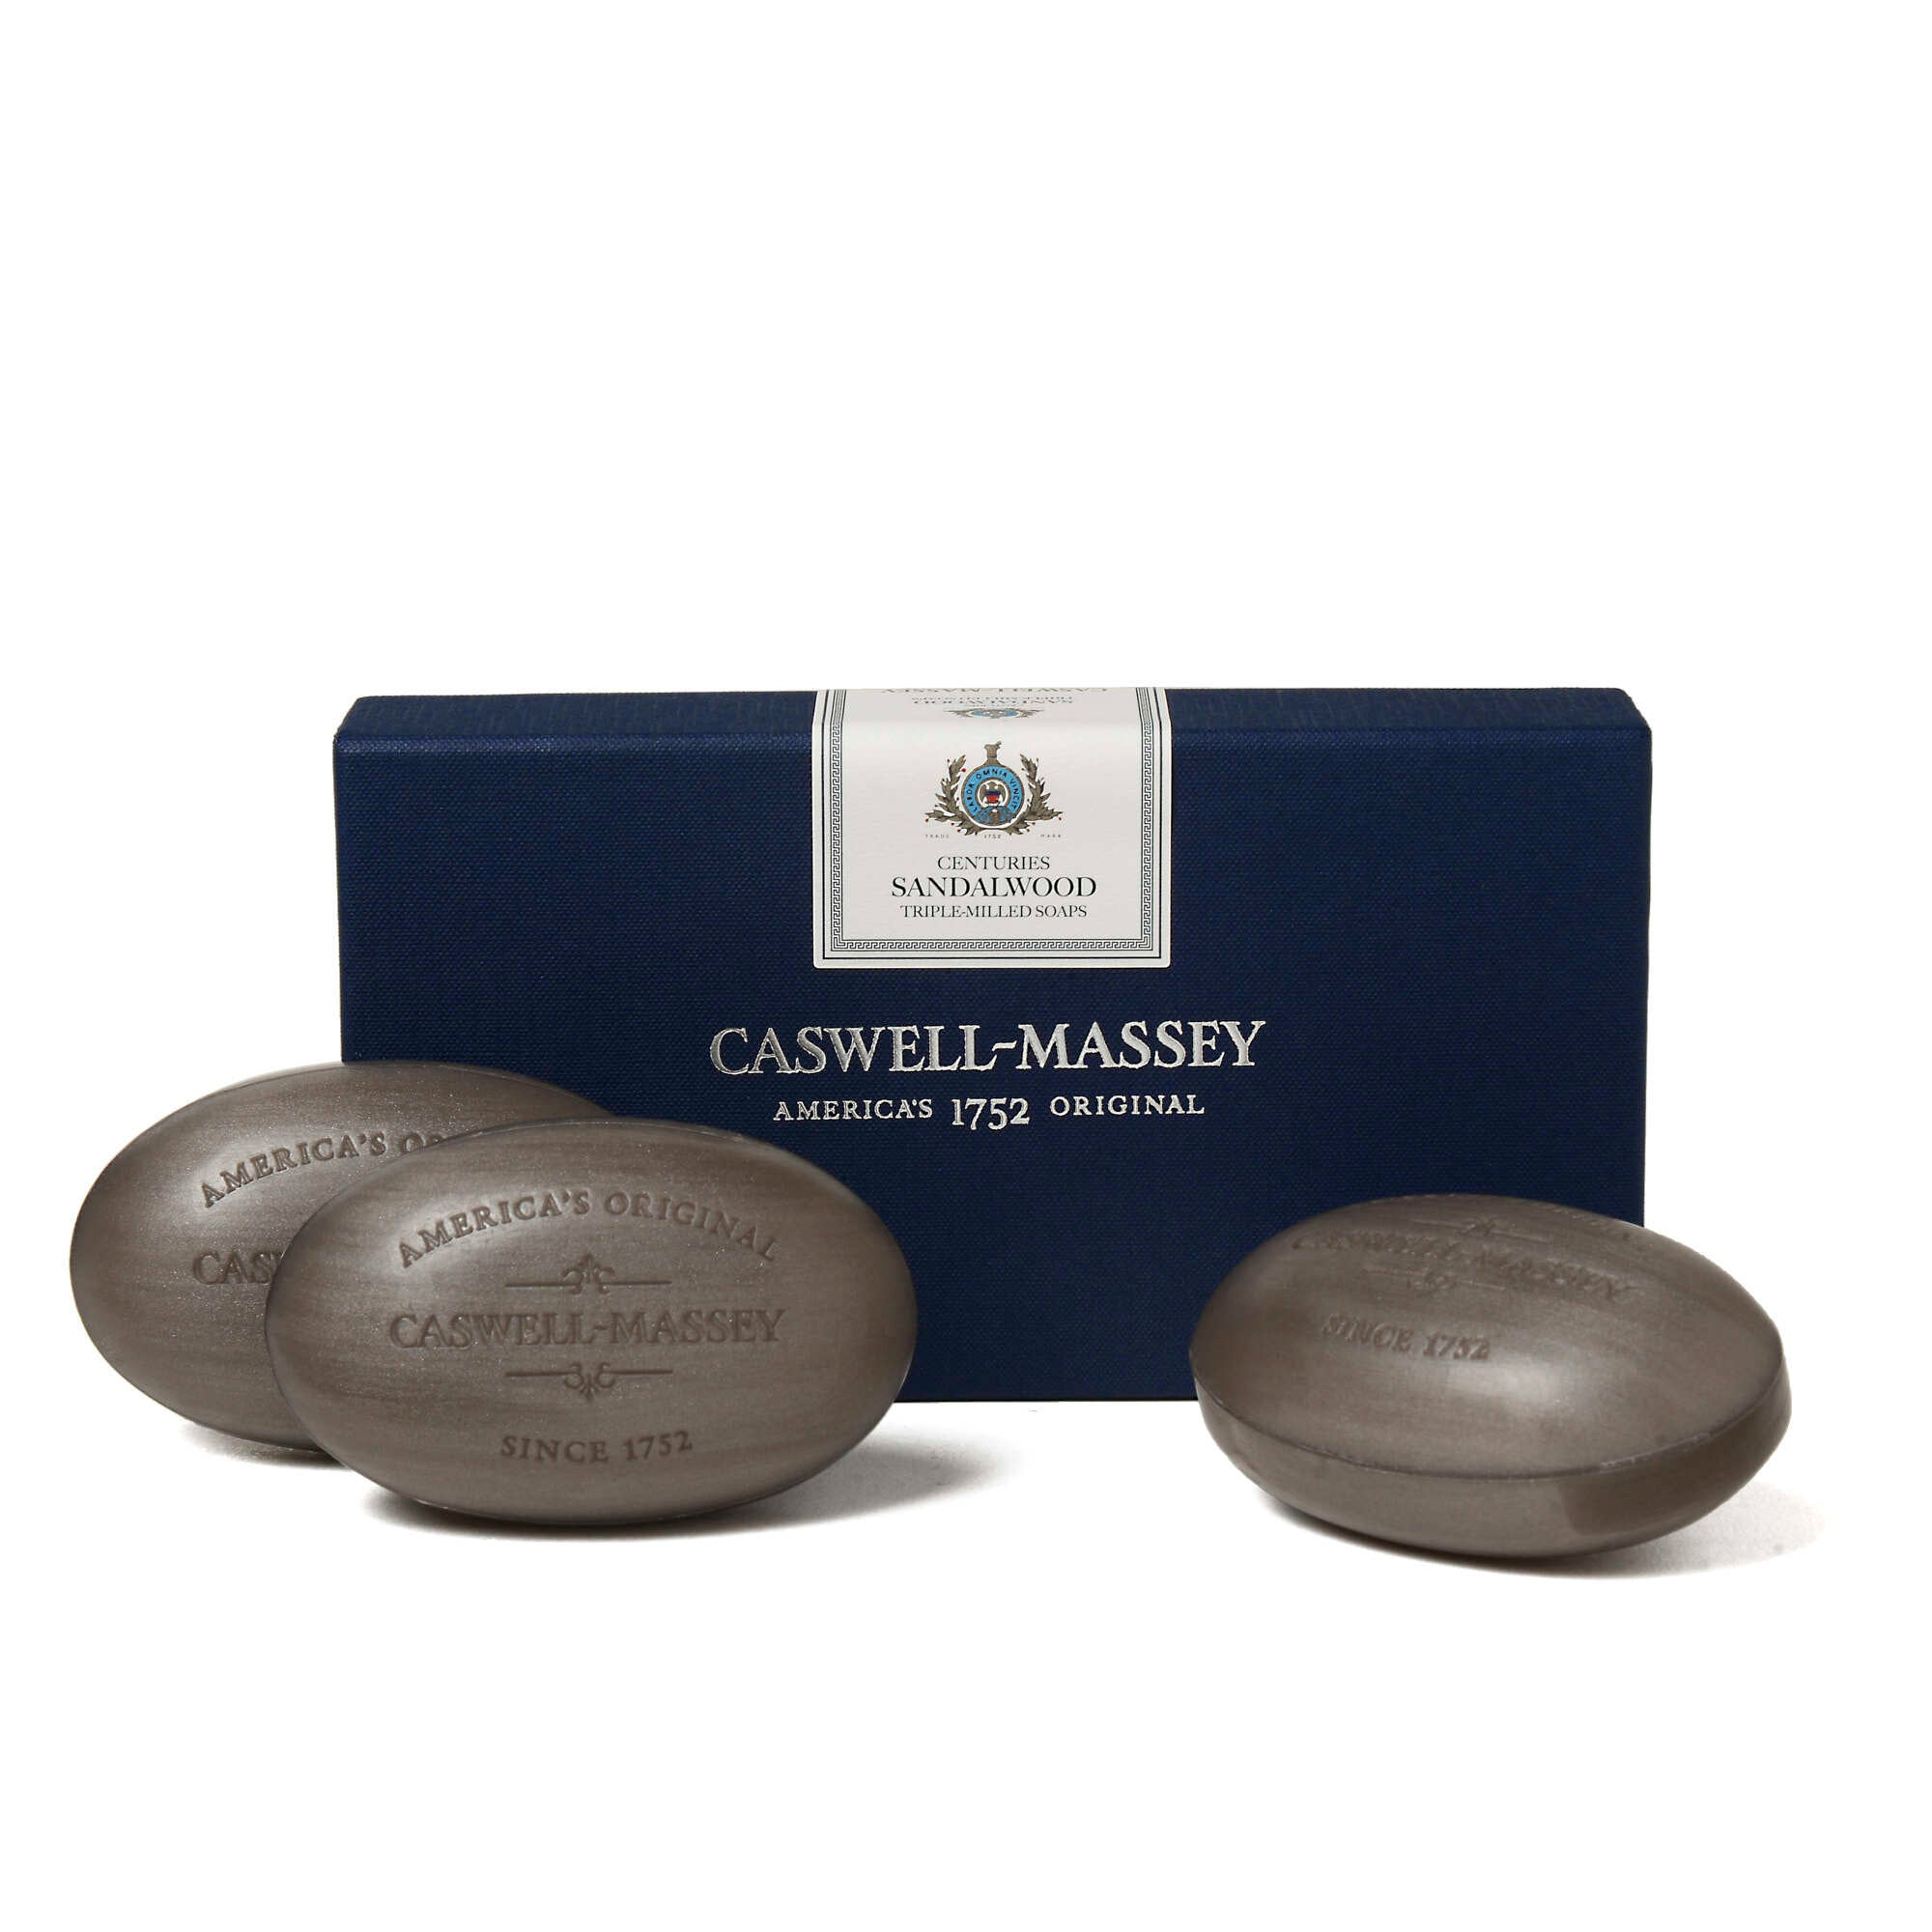 Centuries Sandalwood Three-Soap Set